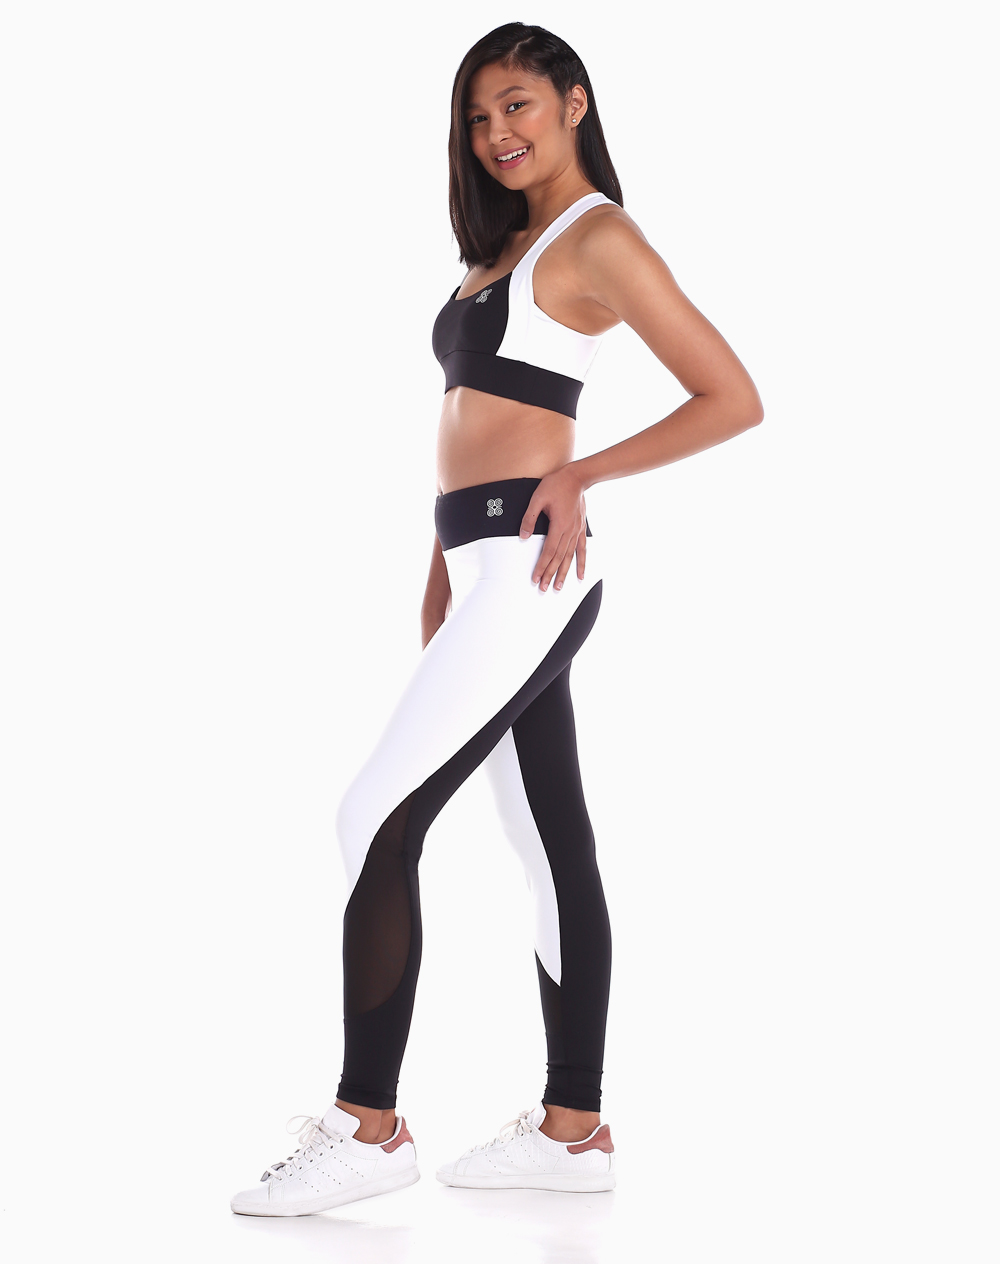 Audacia Bra in Black and White by Strength Activewear | Medium